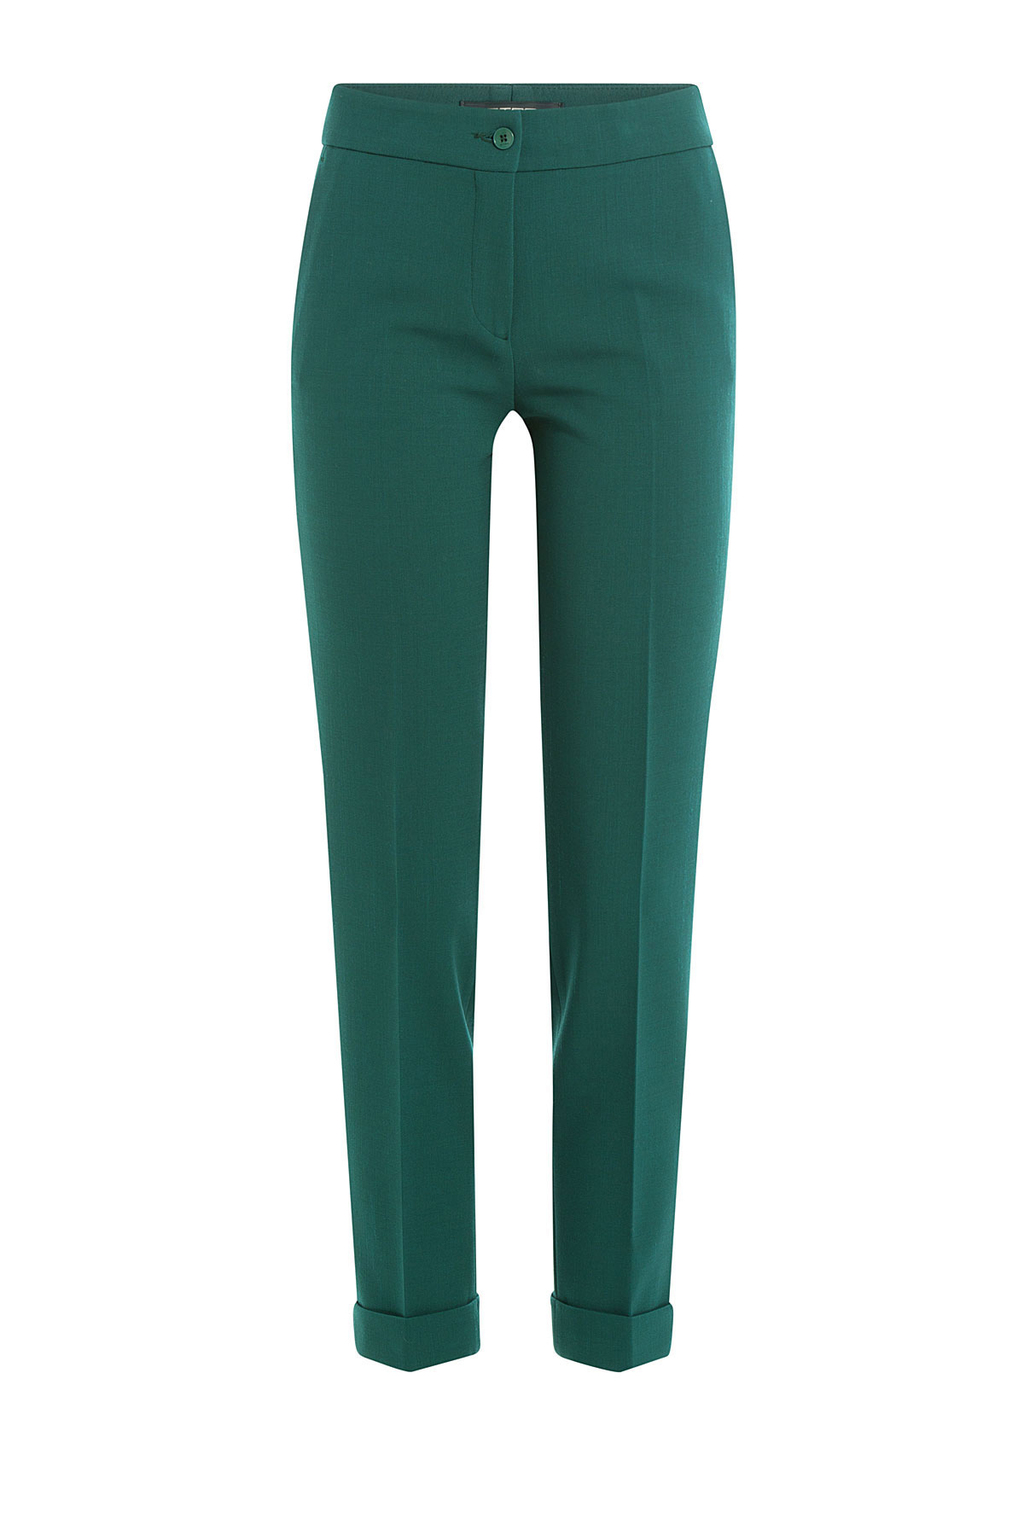 Wool Pants Teal - length: standard; pattern: plain; waist: mid/regular rise; predominant colour: dark green; fibres: wool - mix; fit: slim leg; pattern type: fabric; texture group: woven light midweight; style: standard; occasions: creative work; season: a/w 2016; wardrobe: highlight